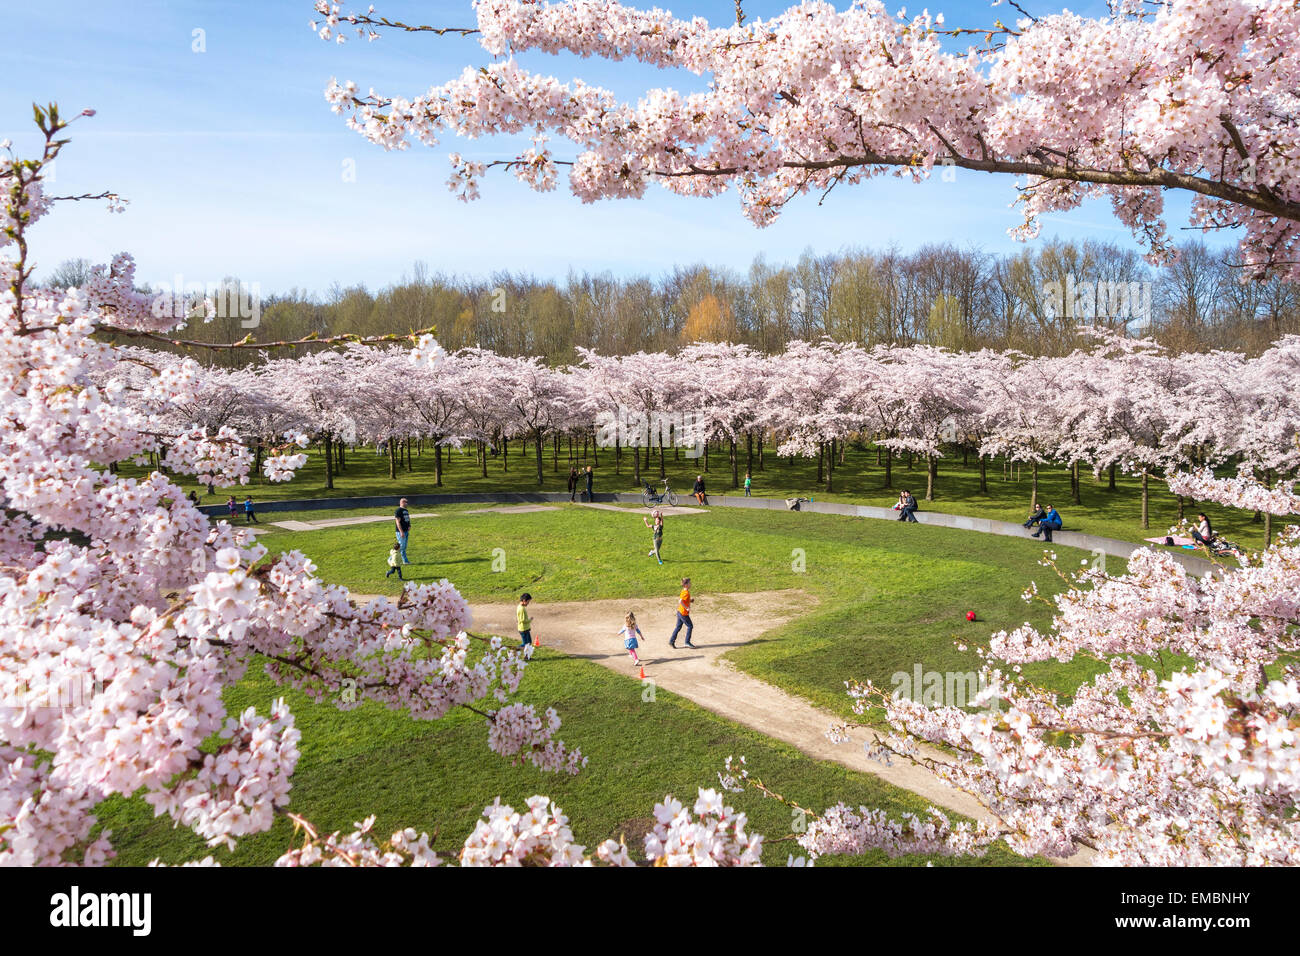 Amsterdam Amsterdamse Bos Bloesempark Cherry Blossom Park boys girls father children families playing soccer football - Stock Image